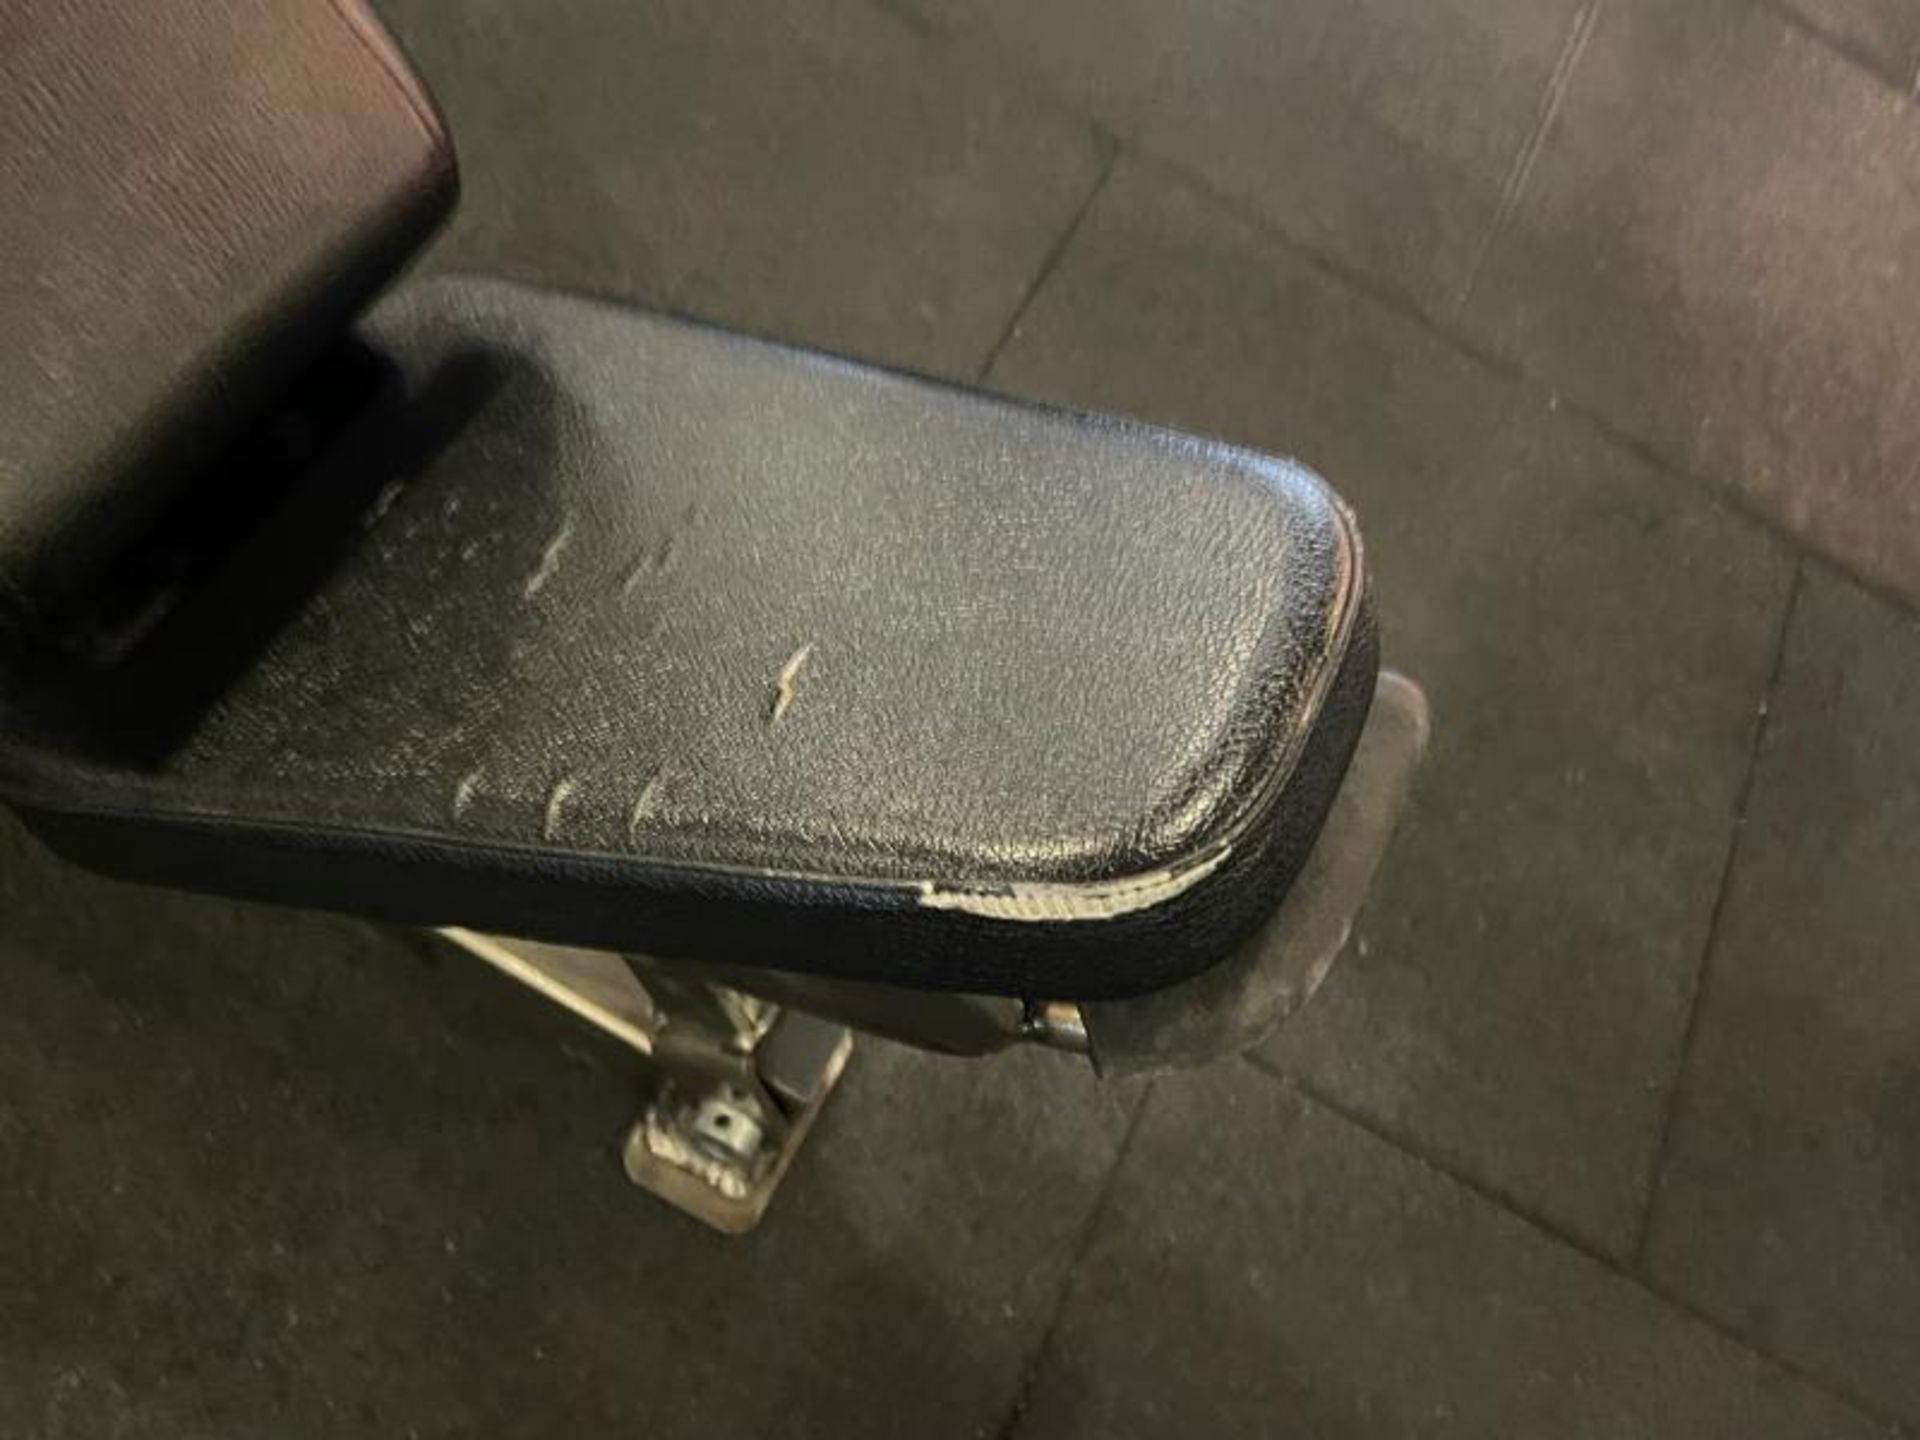 Hammer Strength Adjustable Bench with Torn Vinyl - Image 2 of 4